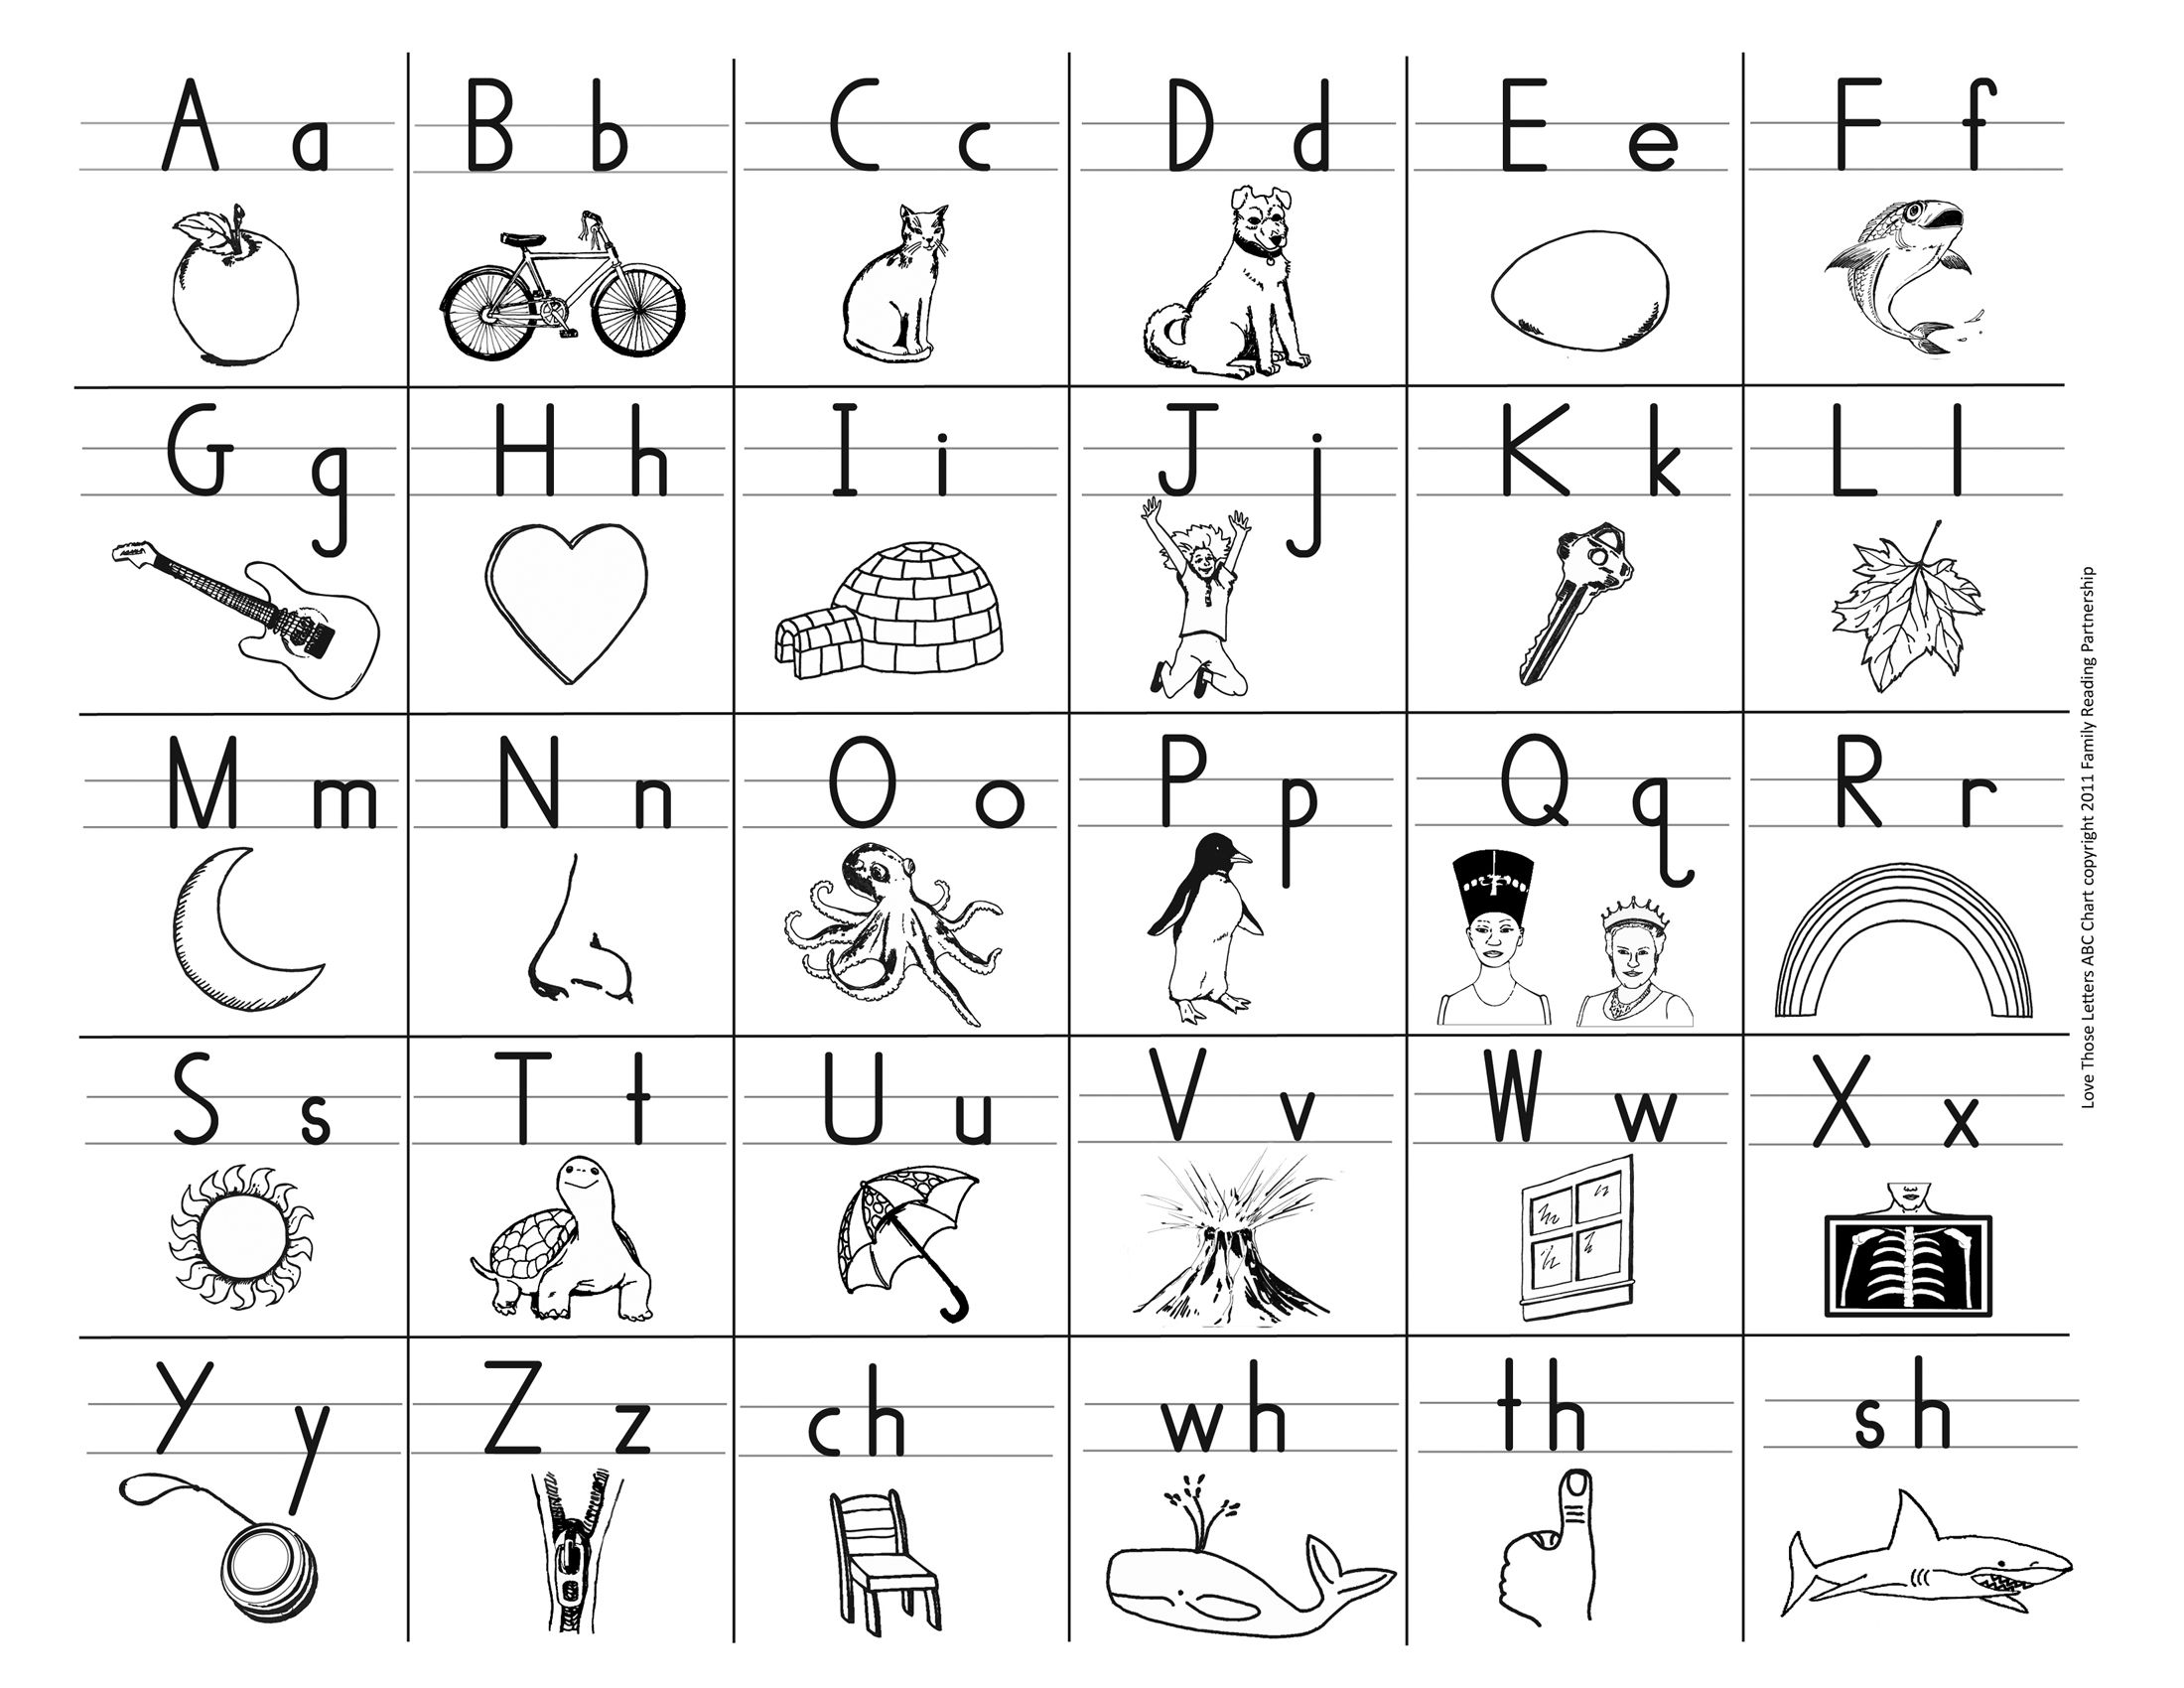 Ltl Black And White Abc Chart To Download With Images